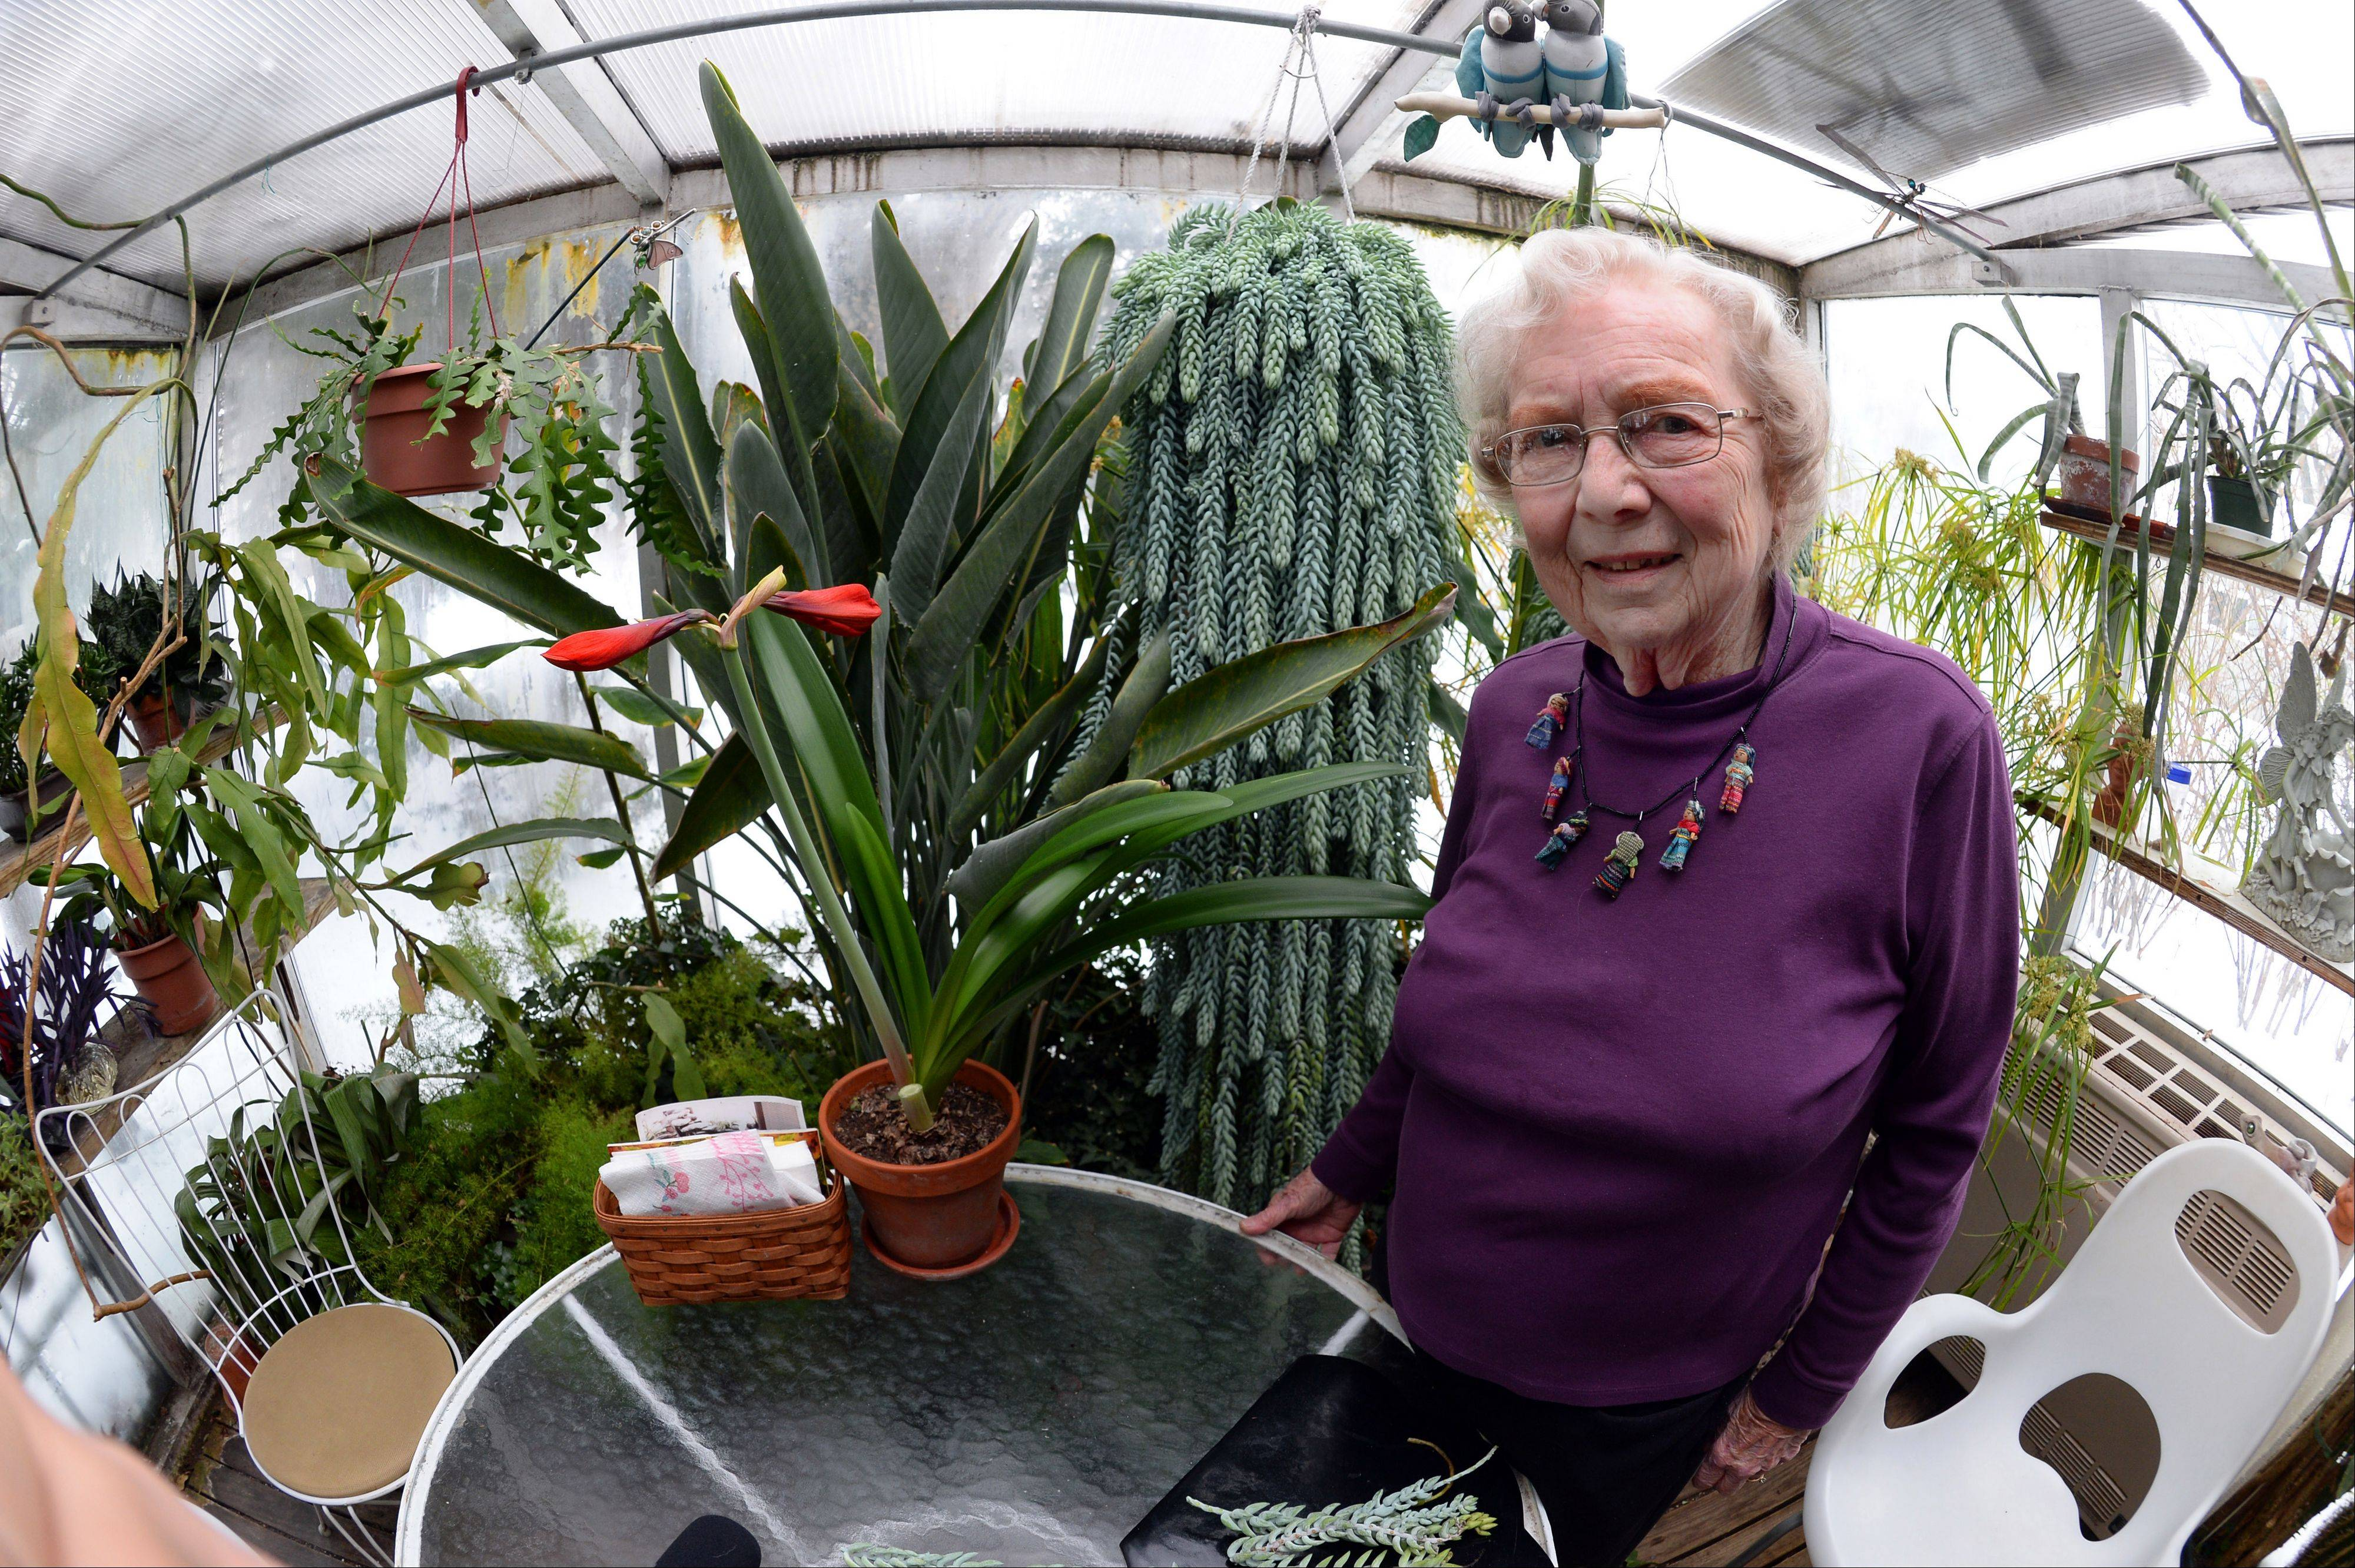 Picking the plants she can take to her new home in The Heritage of Des Plaines is difficult for Penny Bailey of Rolling Meadows. The 85-year-old widow spent countless hours with her husband, Bill, in their 75-degree greenhouse built onto the back of their house.